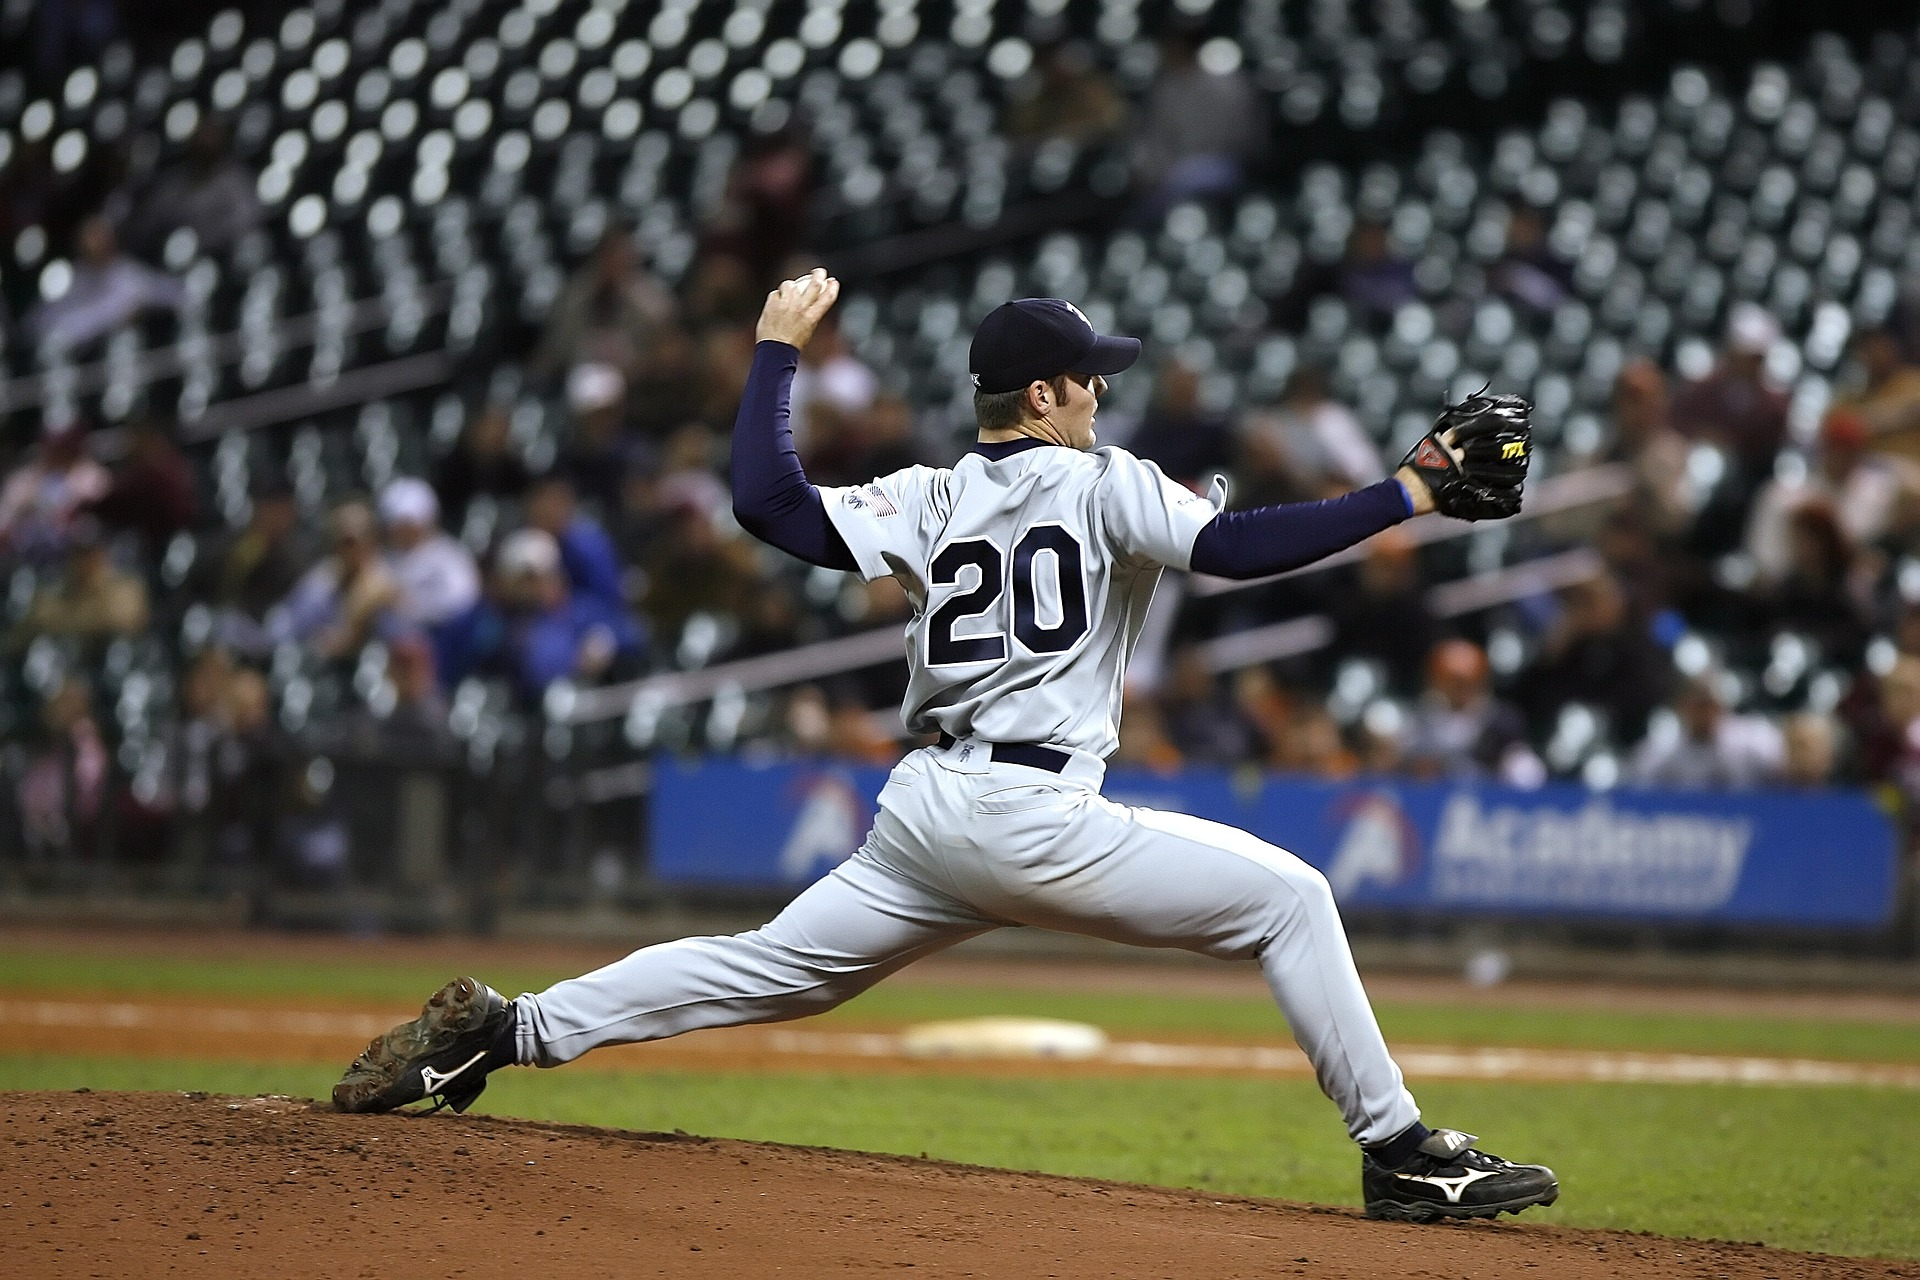 Baseball Player Pitching, which is commonly associated with rotator cuff injuries